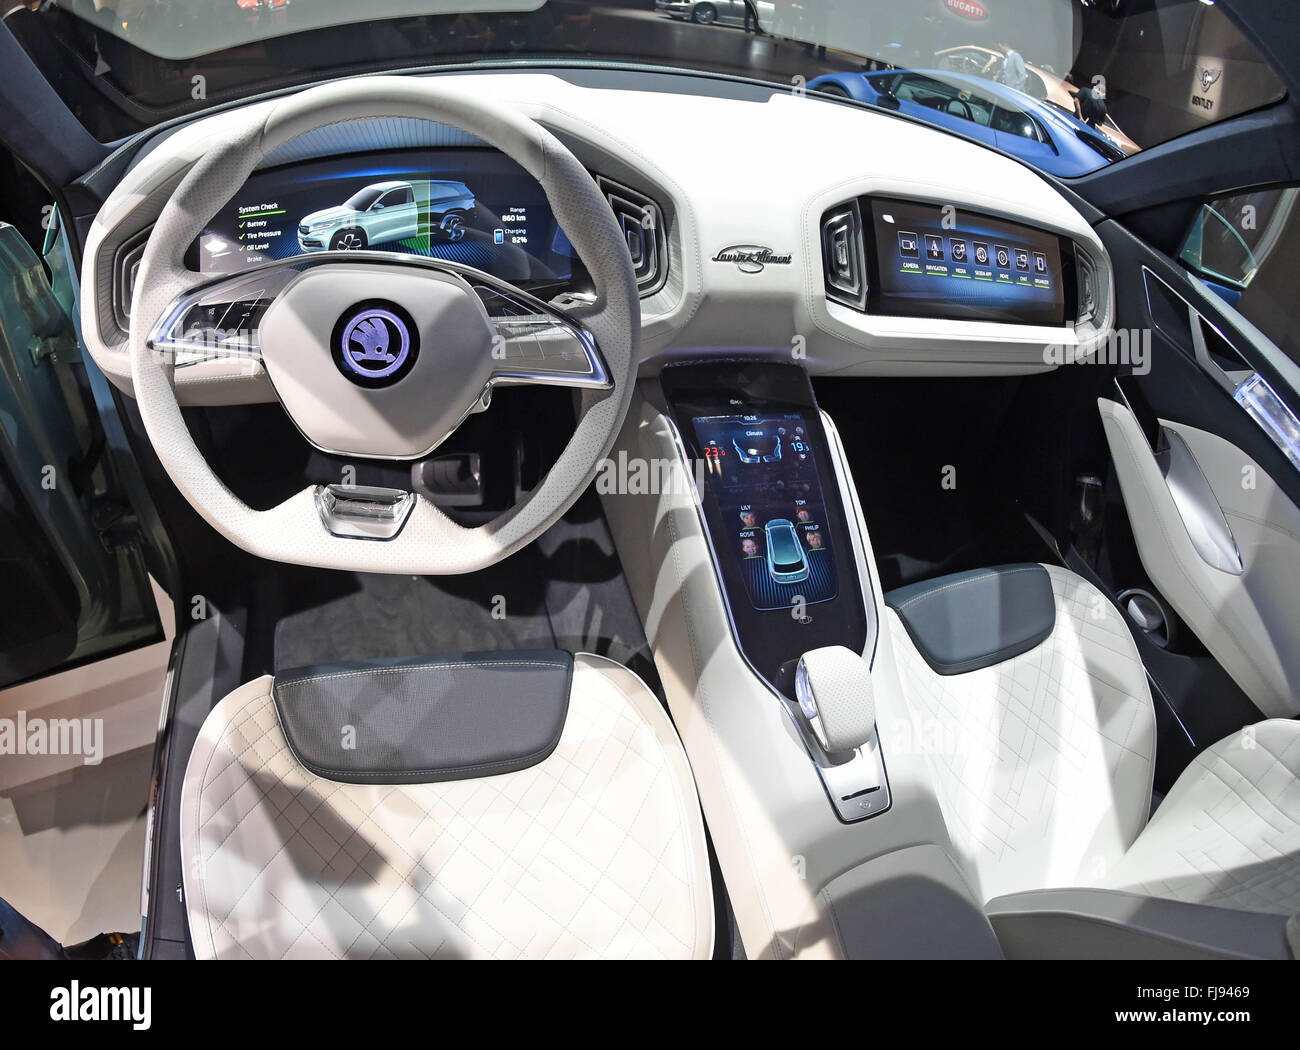 geneva switzerland 29th feb 2016 interior view of a skoda vision stock photo 97316529 alamy. Black Bedroom Furniture Sets. Home Design Ideas